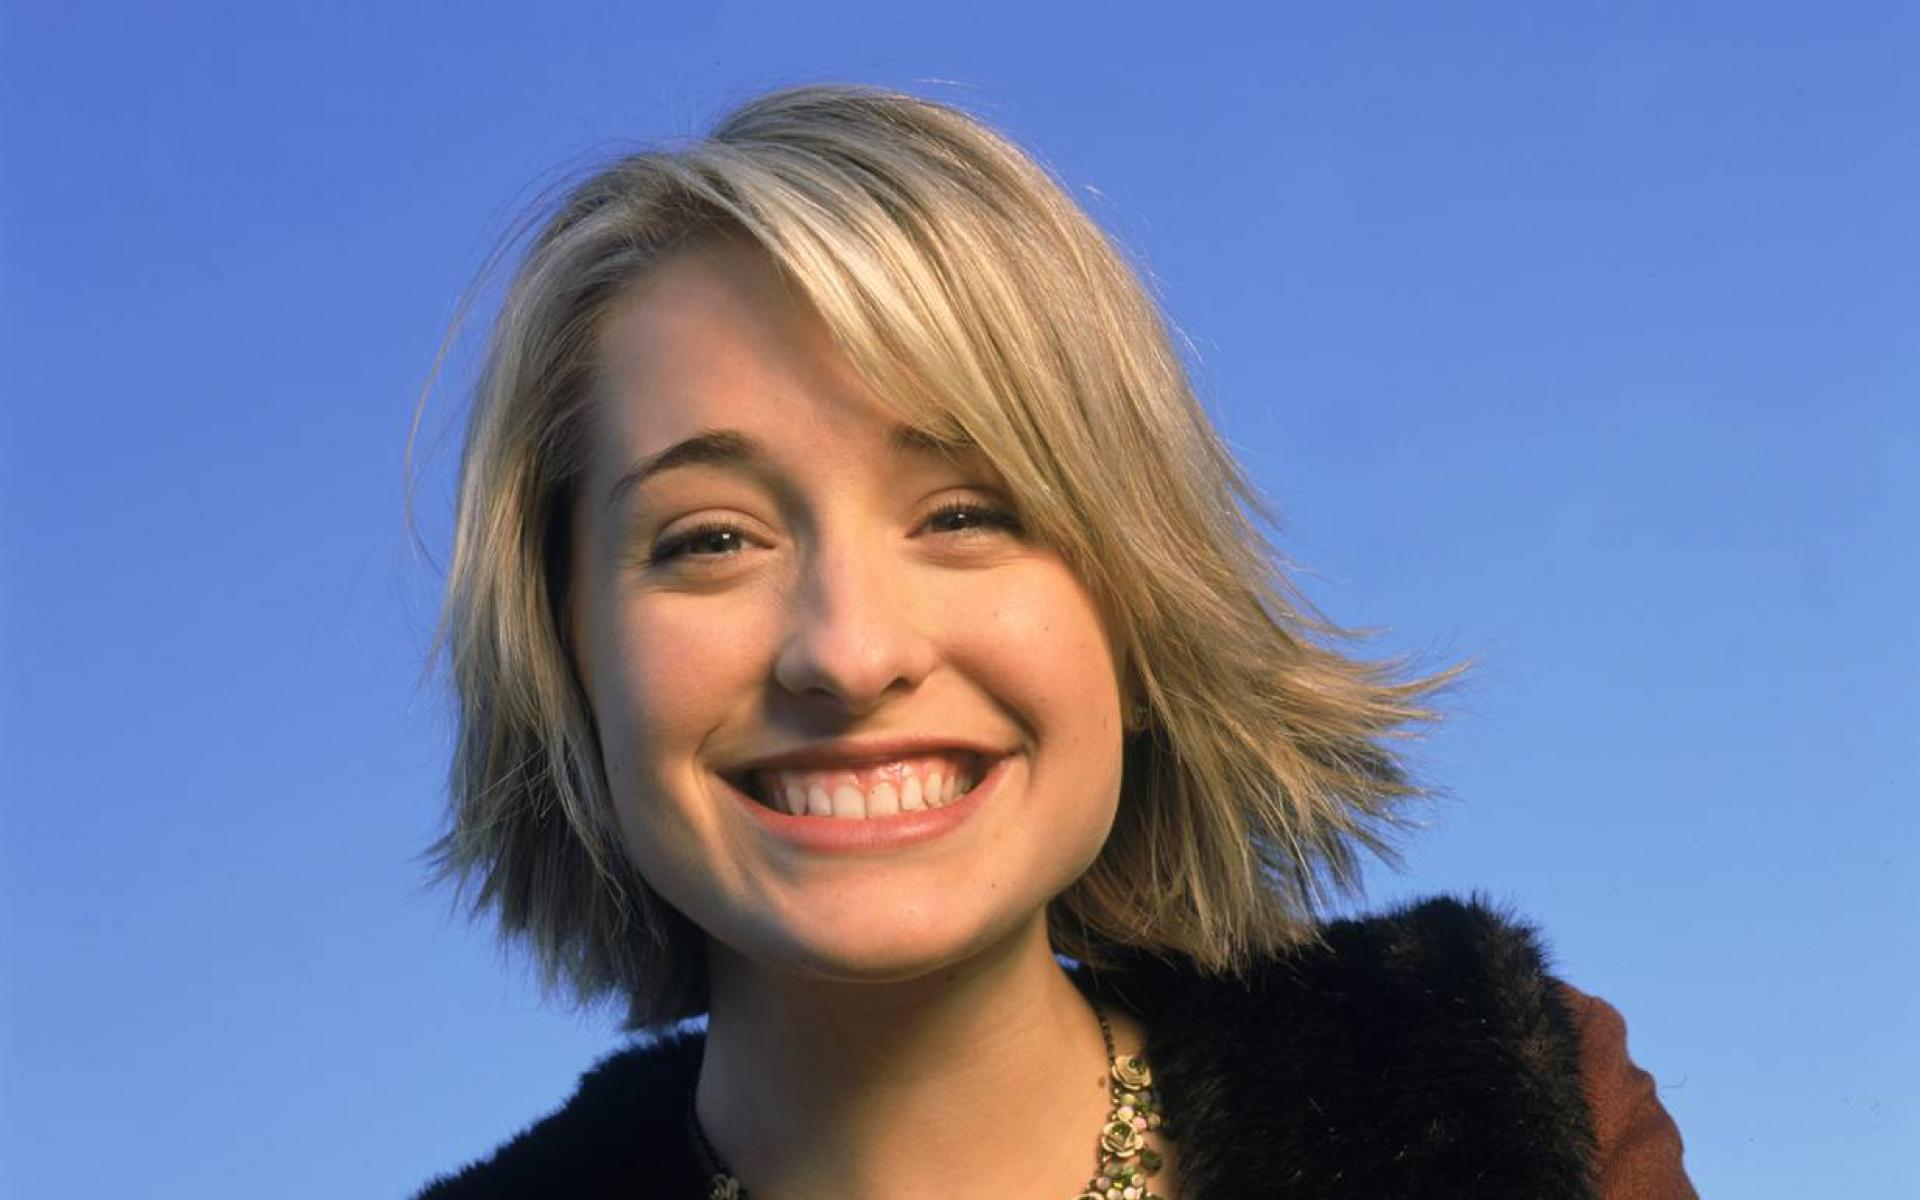 Allison mack wallpaper HQ WALLPAPER   803 1920x1200